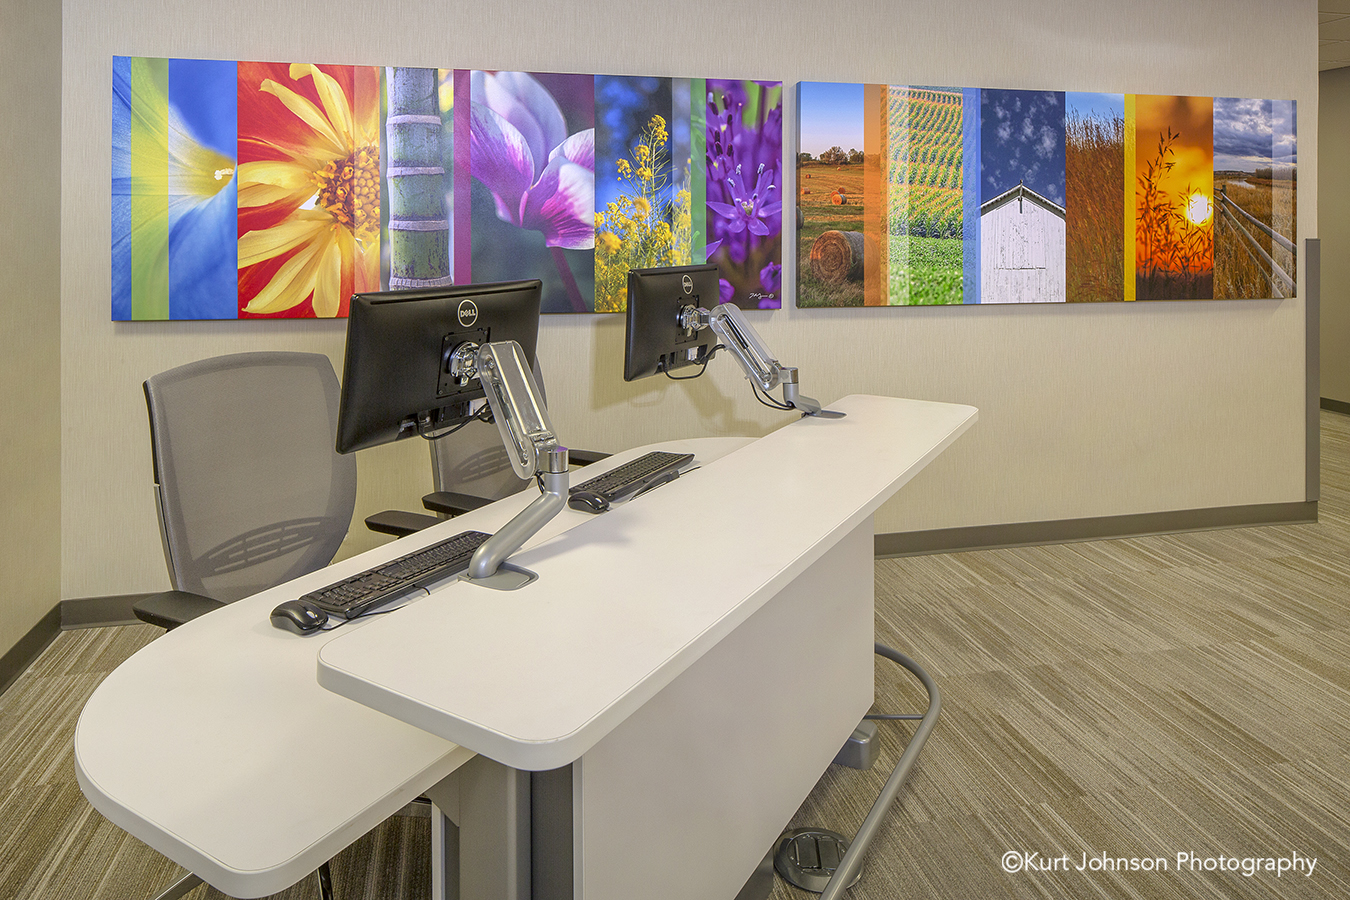 Lexington Regional Install gallery wrapped canvas color slices flower design healthcare design installation